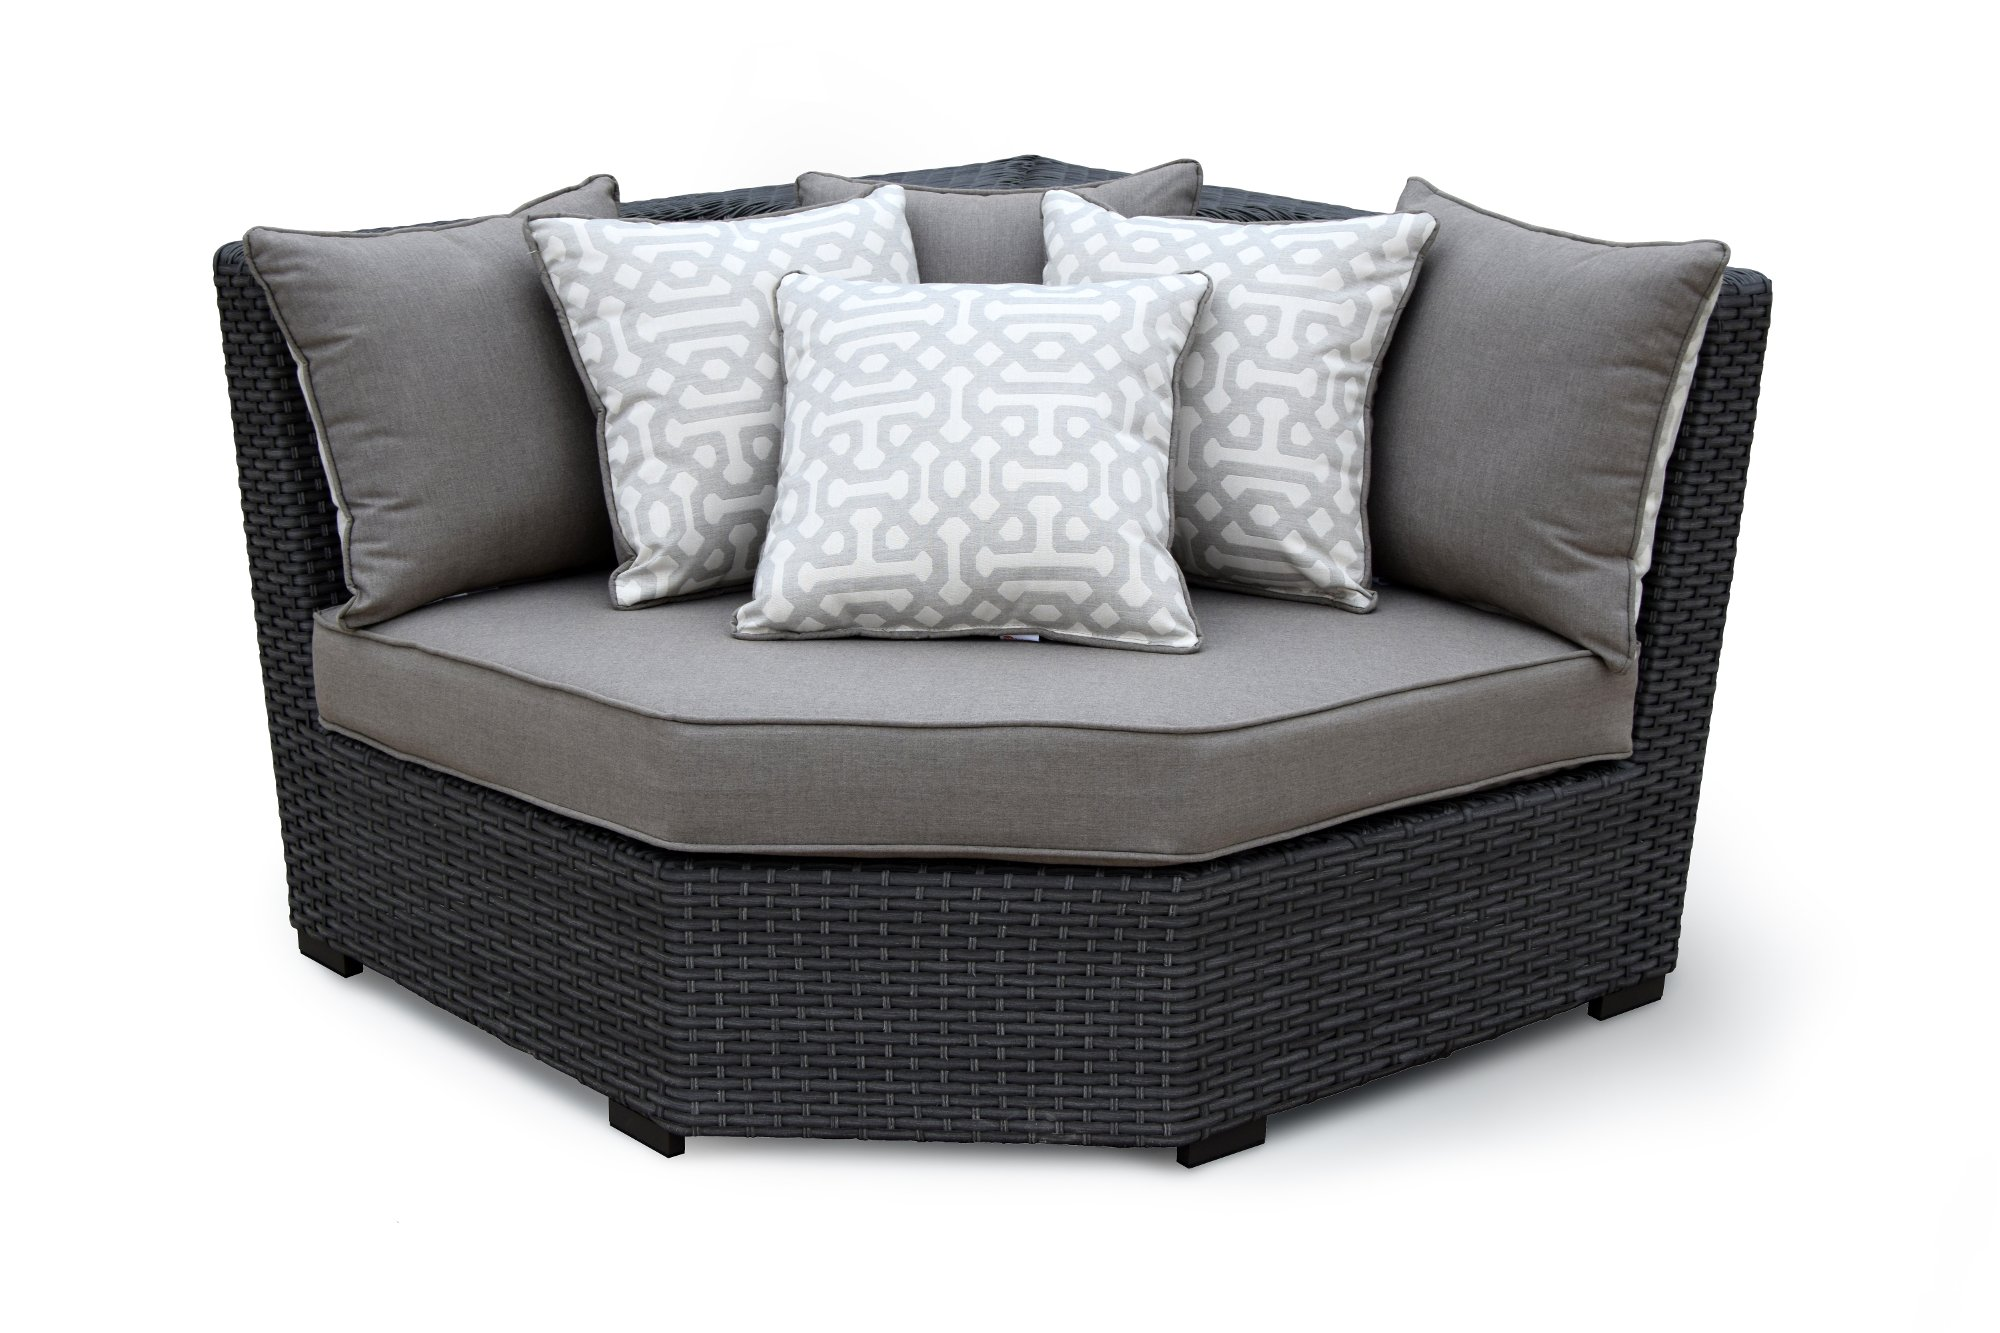 ergebnis kaufen and patio of sofa xxl inspirational top outdoor lovely couch sectional chairs